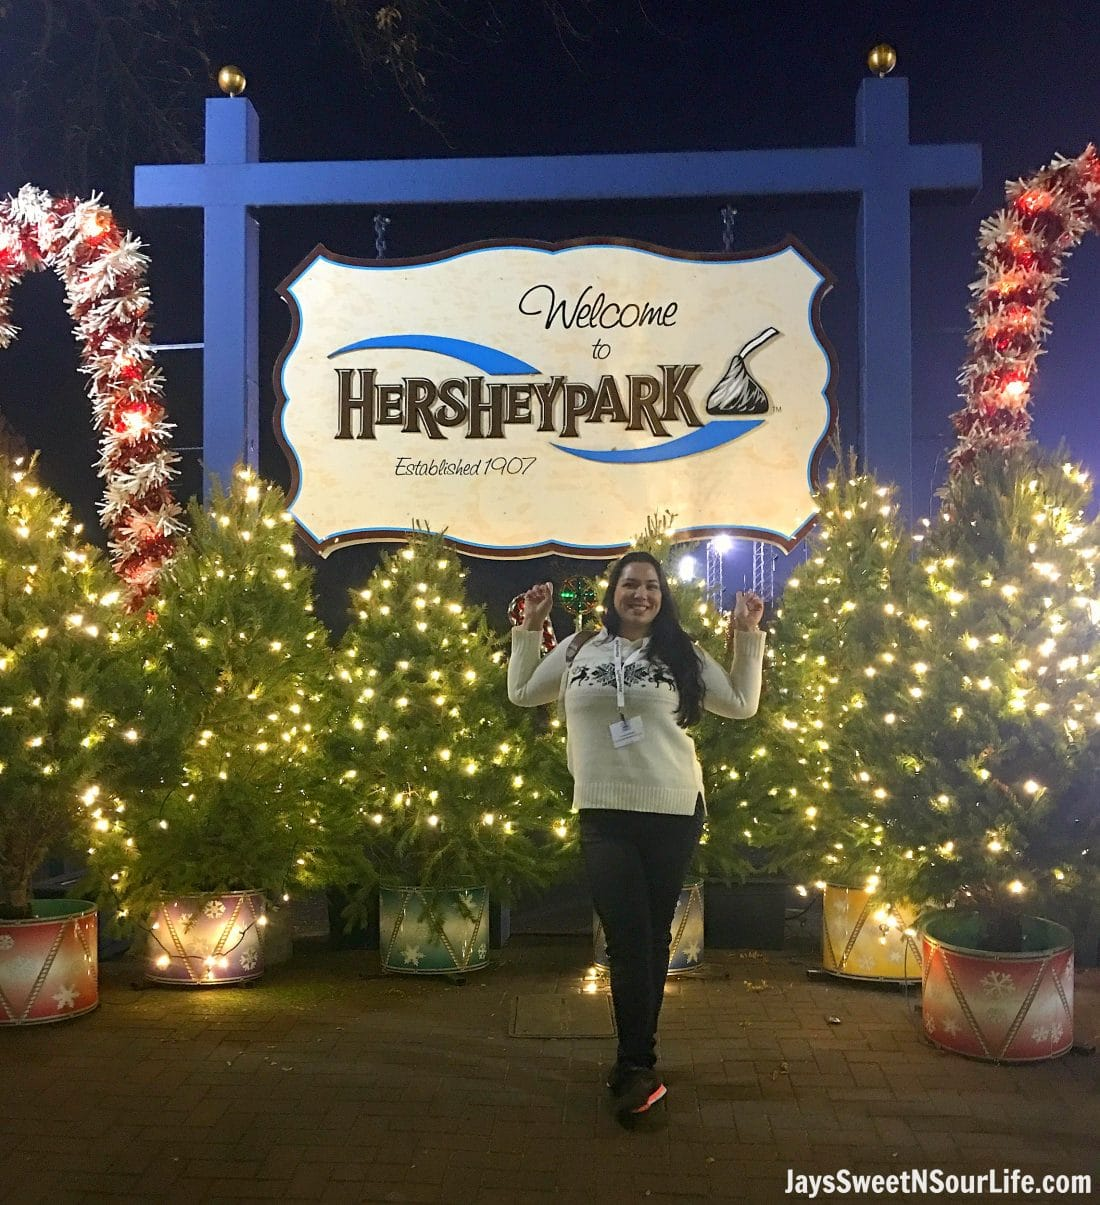 Visit Hershey Park to ride their amazing rides and experience Christmas in a world of chocolate.